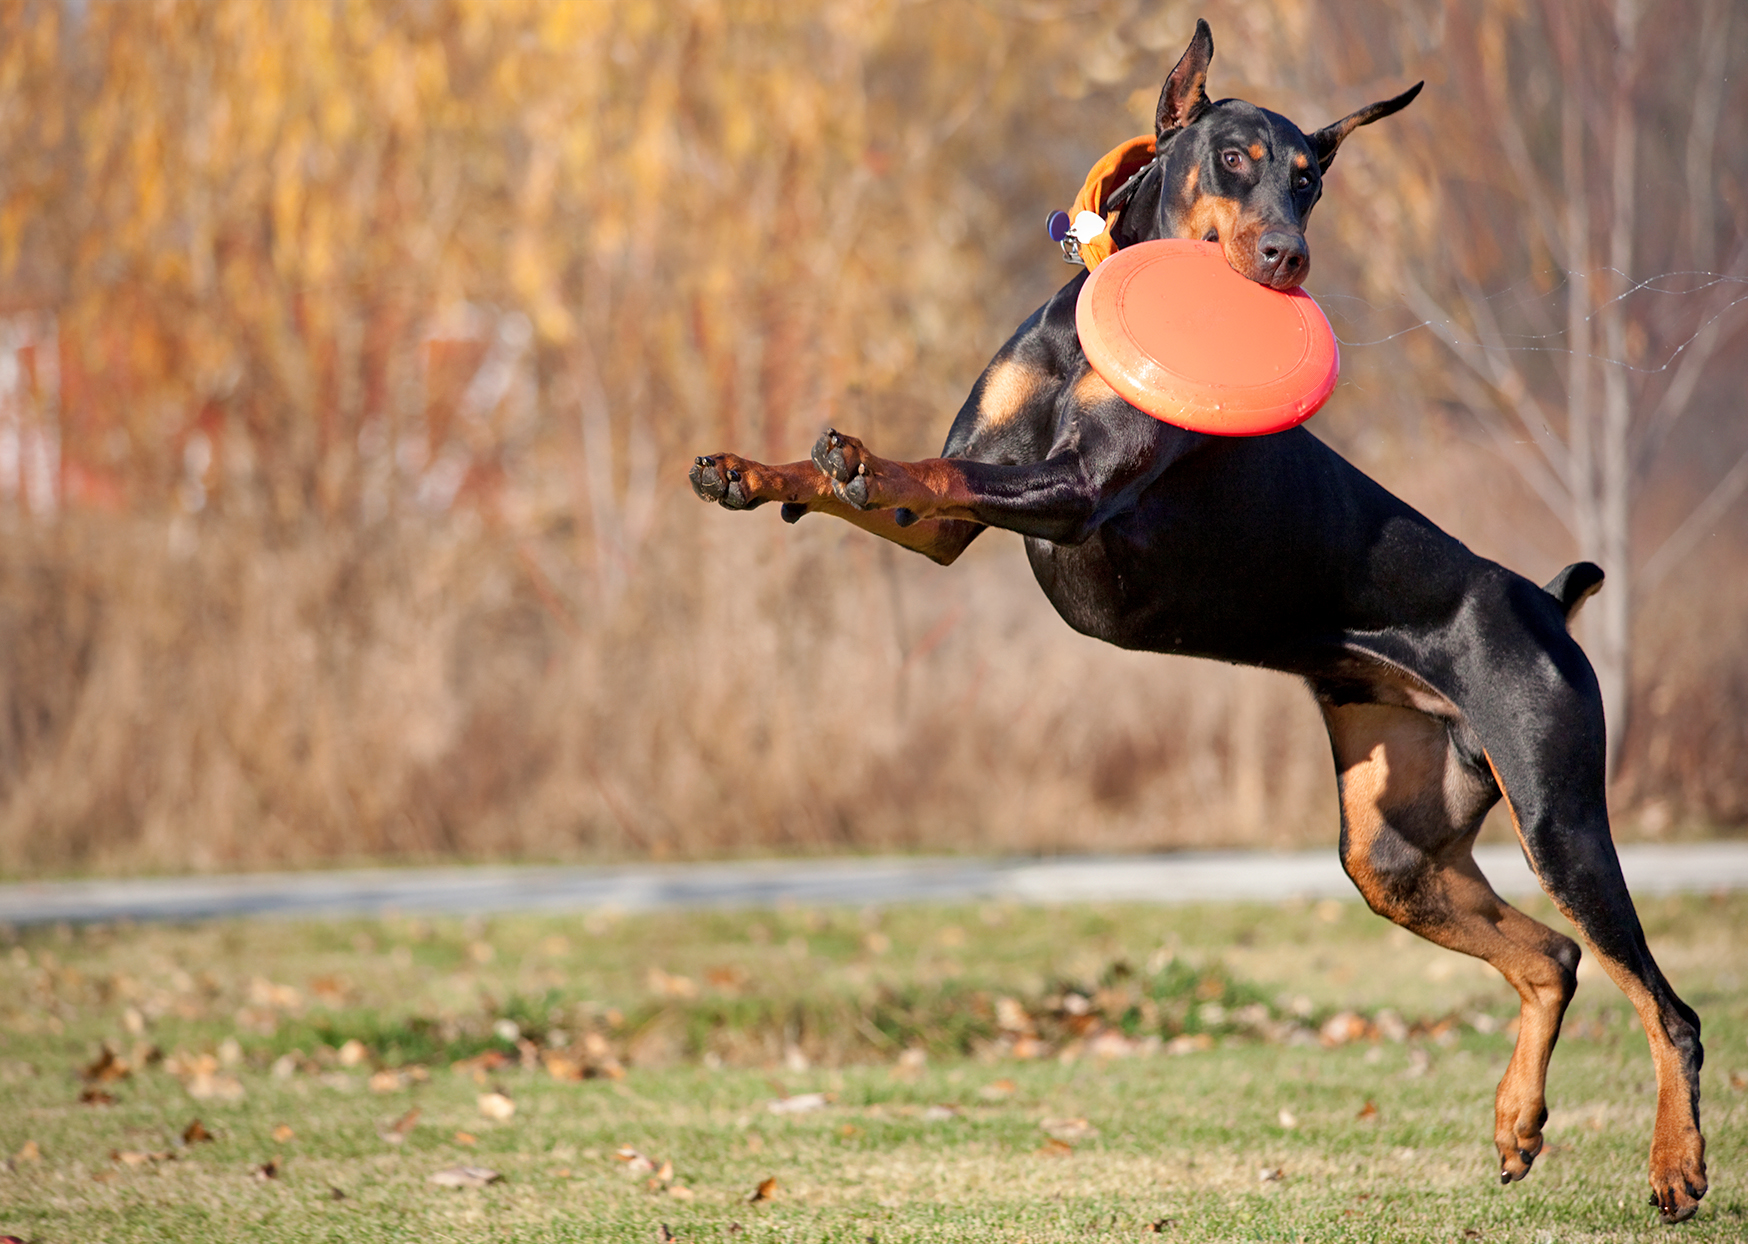 Adult Doberman Pinscher jumps up and catches orange frisbee in mouth